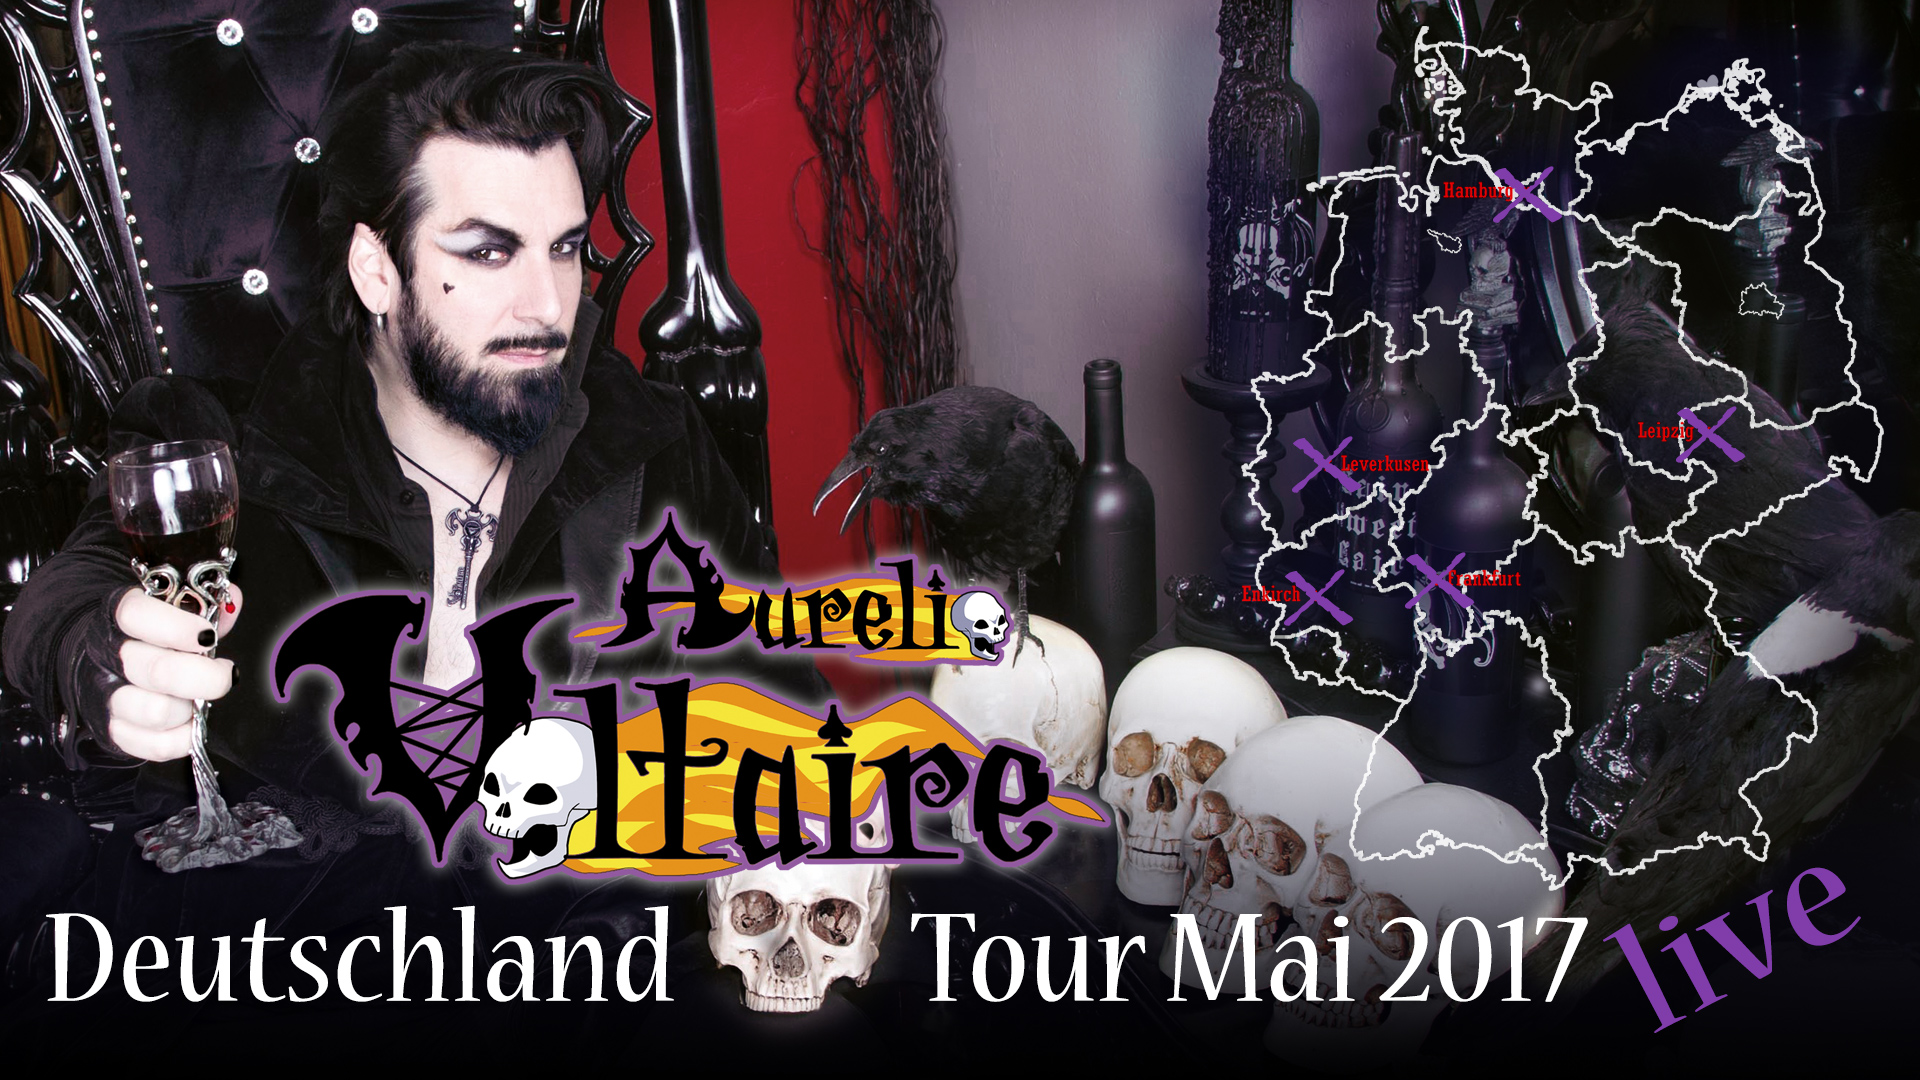 Voltaire Tour 2017 Locations in Germany Map Leipzig Leverkusen Frankfurt Enkirch Hamburg